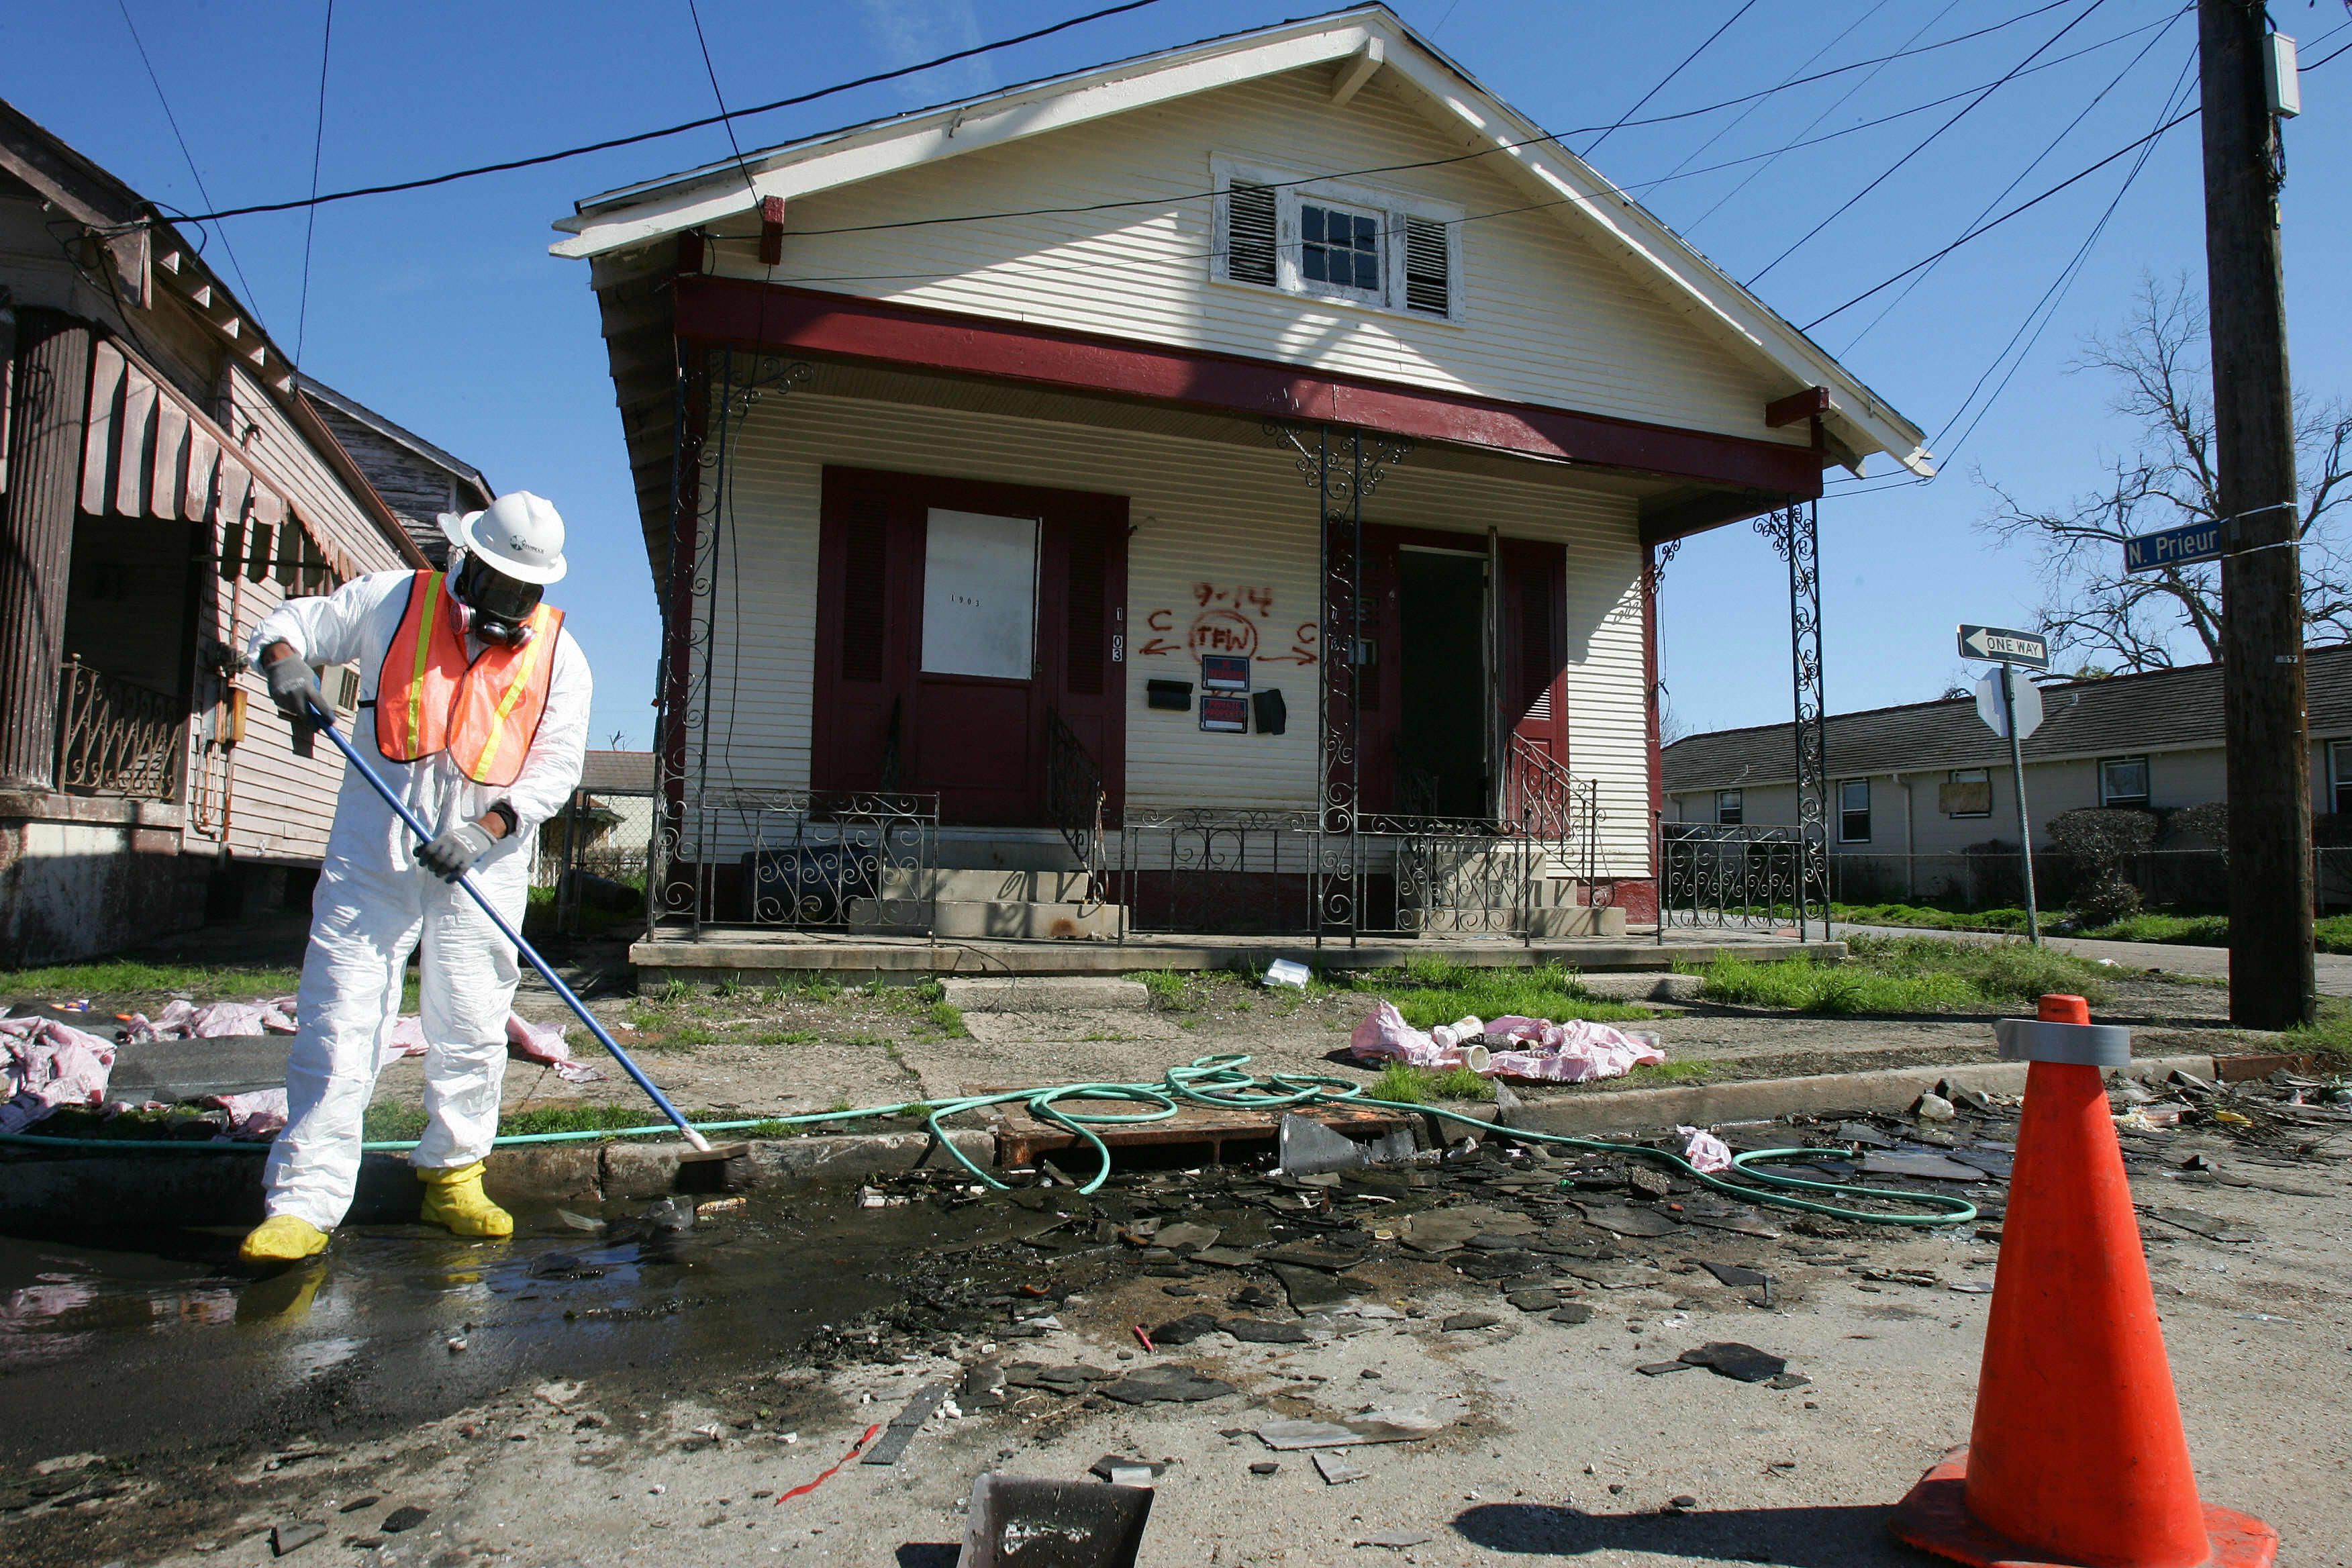 Abestos dangers, asbestos deaths, New Orleans Katrina cleanup 2006